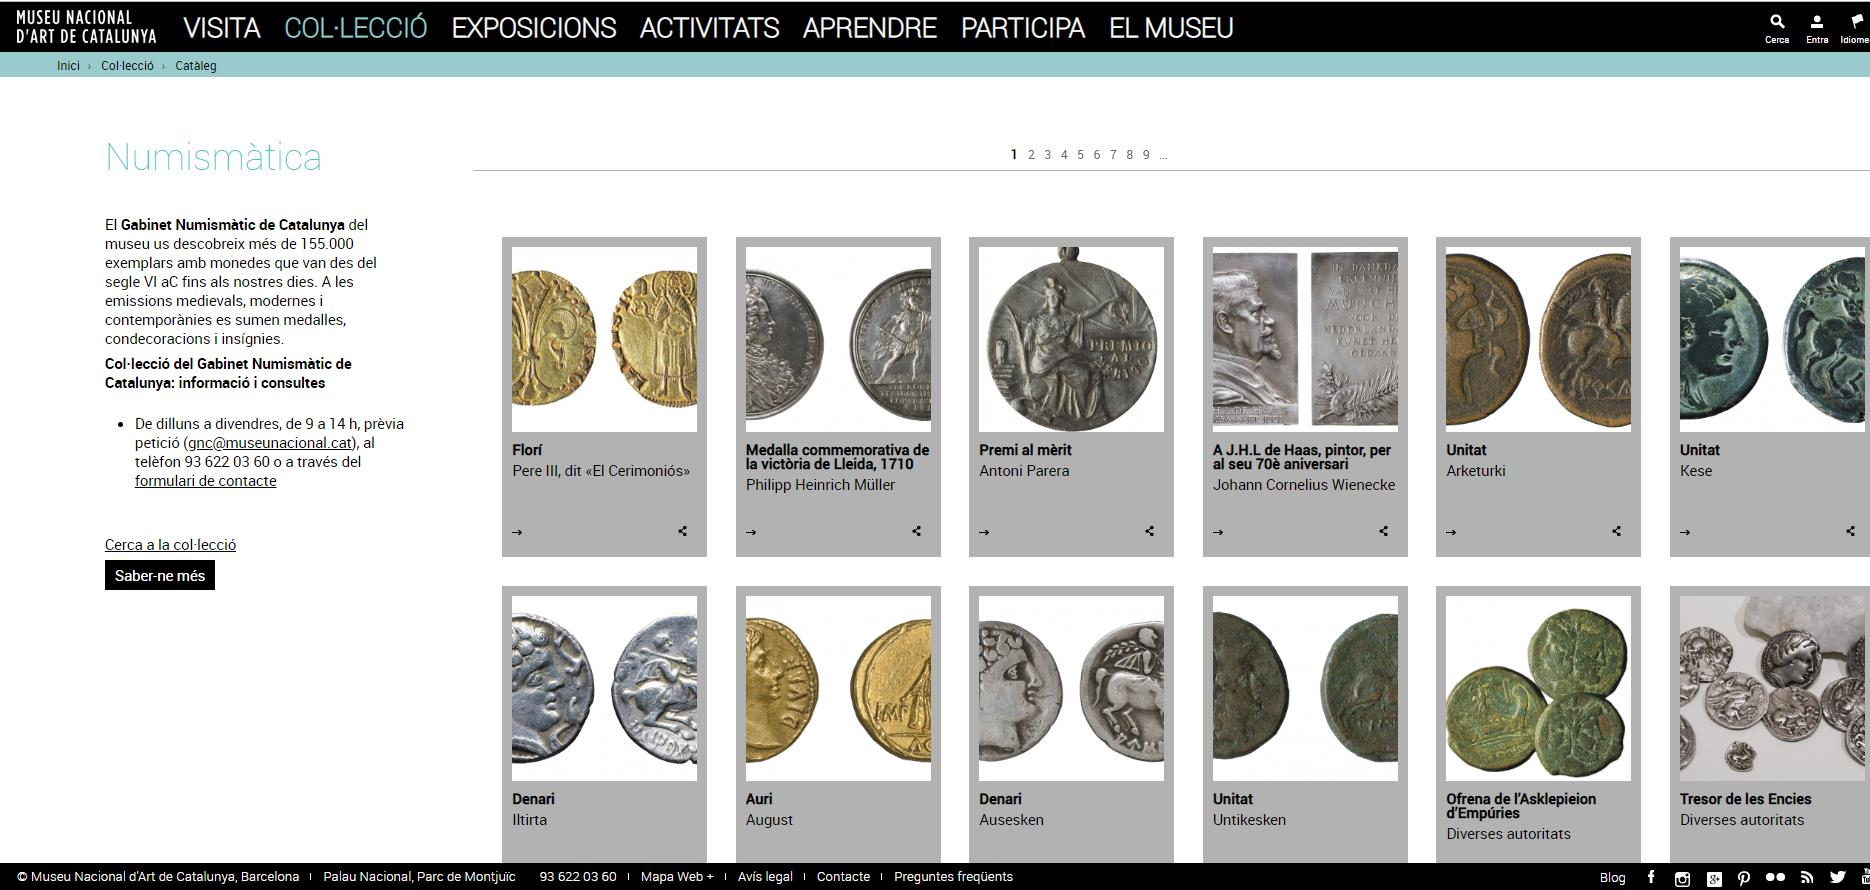 Online Catalog of the of the Numismatic Cabinet of Catalonia